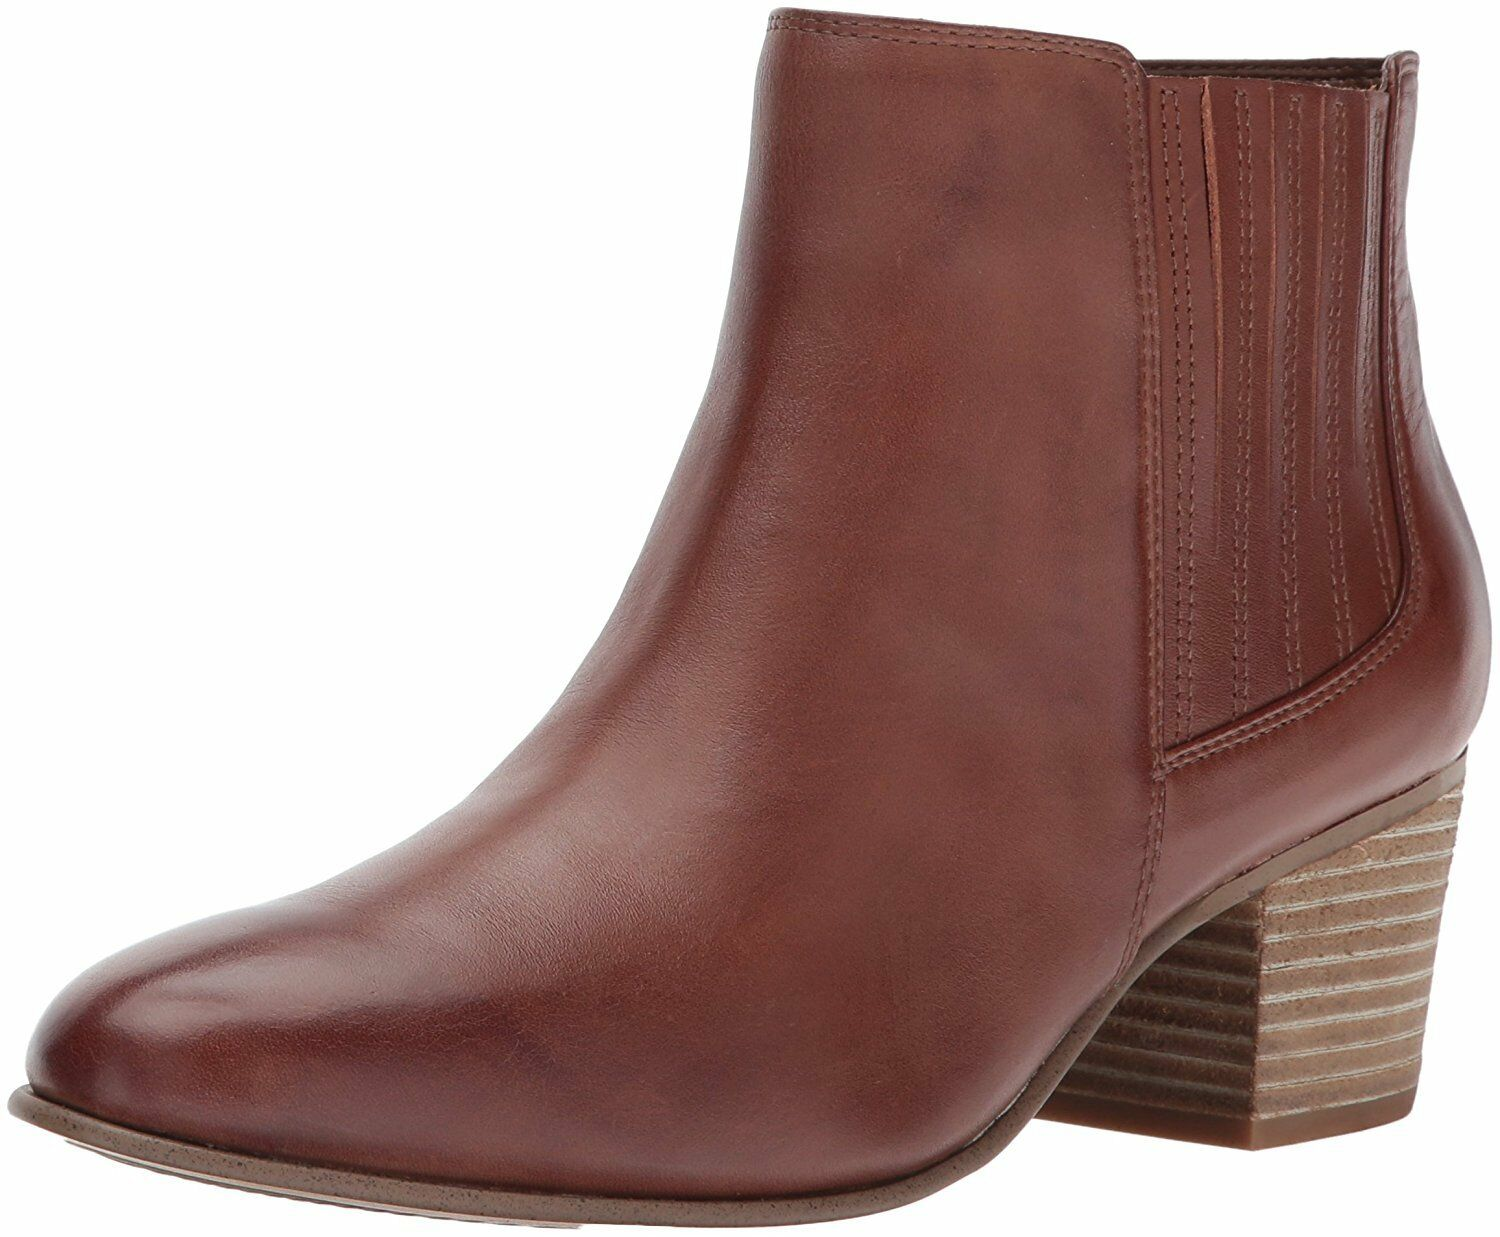 Clarks donna Maypearl Tulsa Ankle avvioie- Pick SZ Coloree.